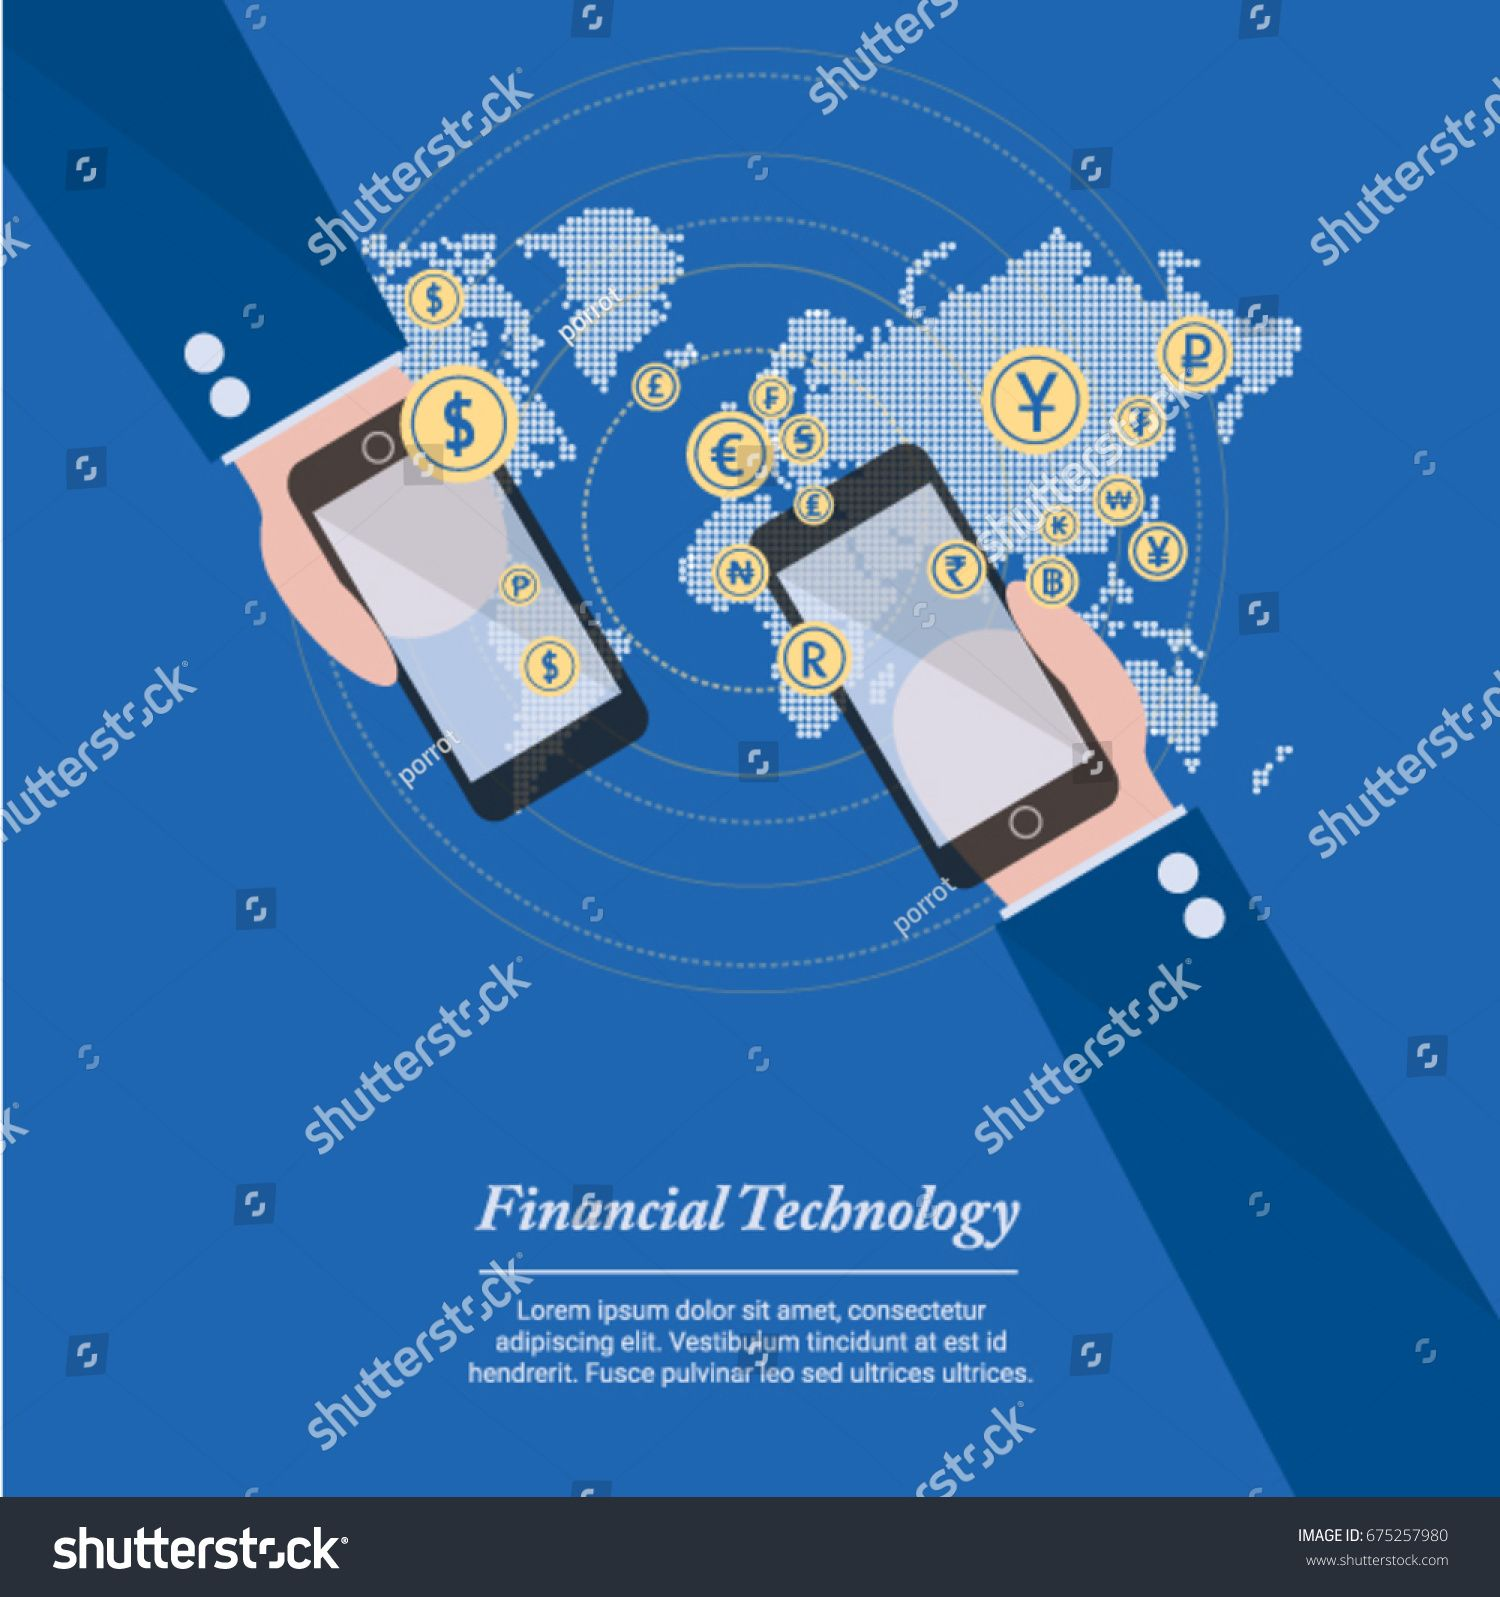 Financial Technology The New Technology Of Business And Finance In The World Of Innovation This Is Very Useful For Presenta Business Finance Finance Business